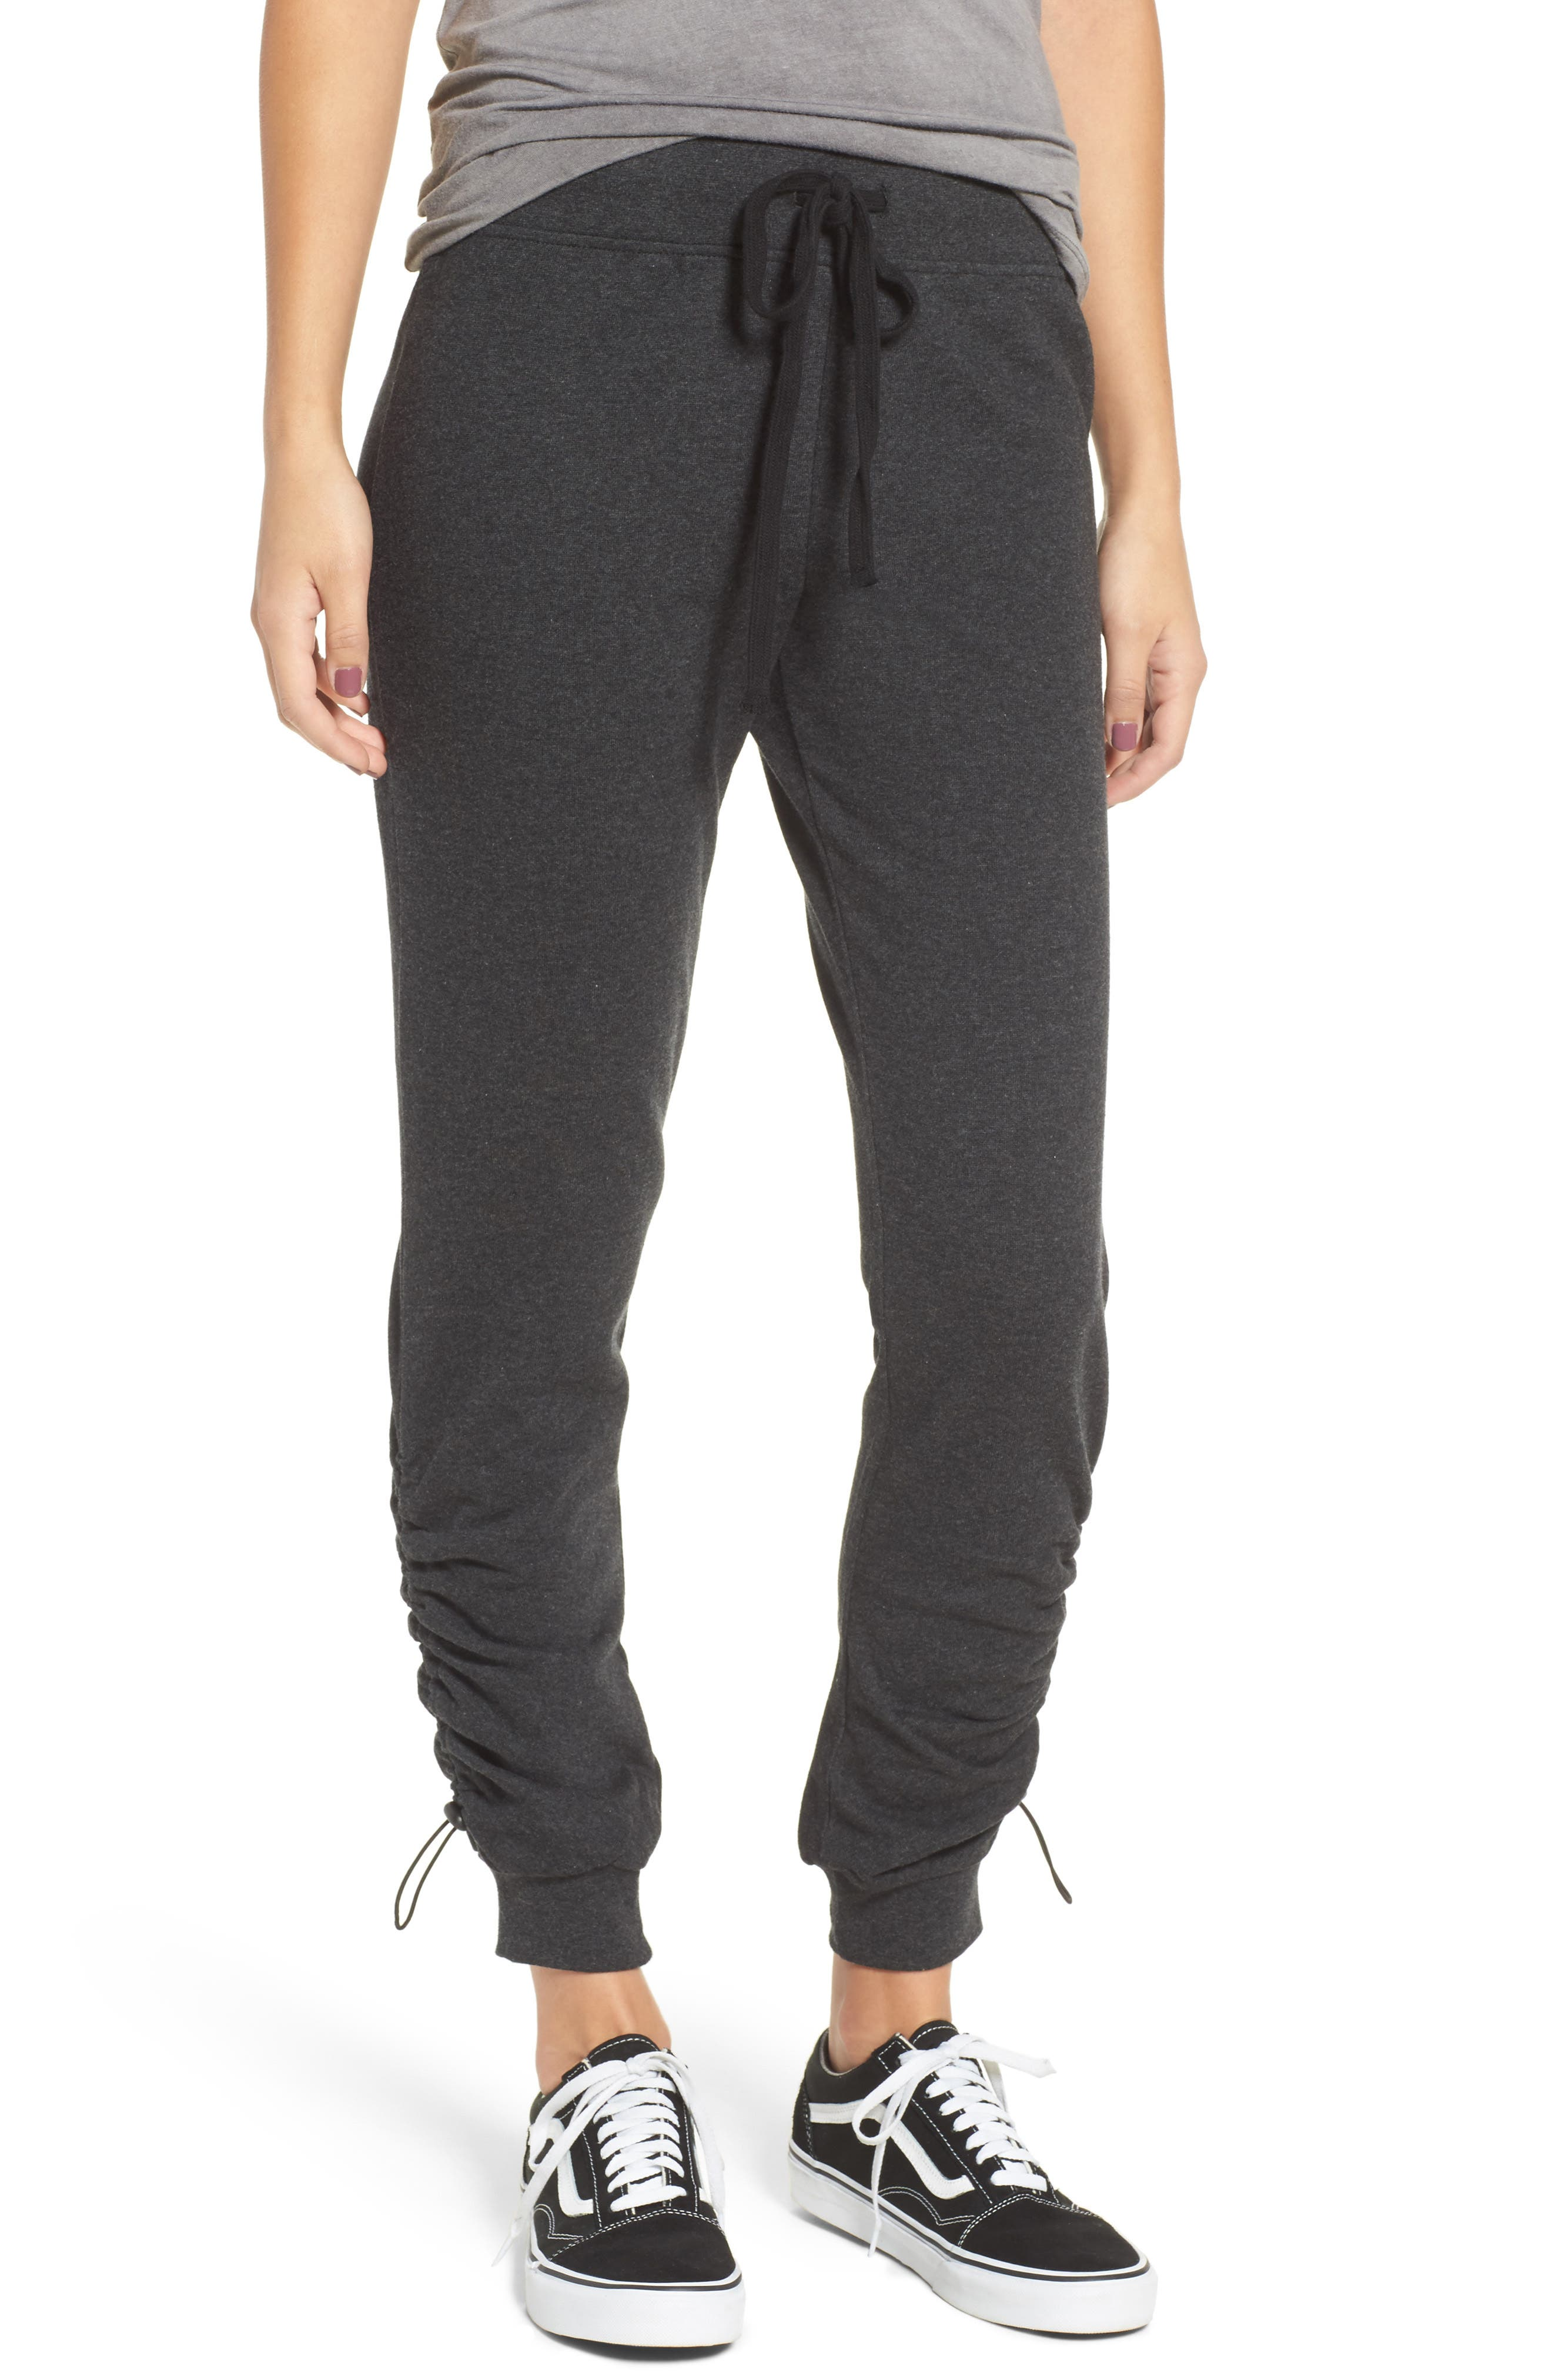 Socialite Cinched Joggers